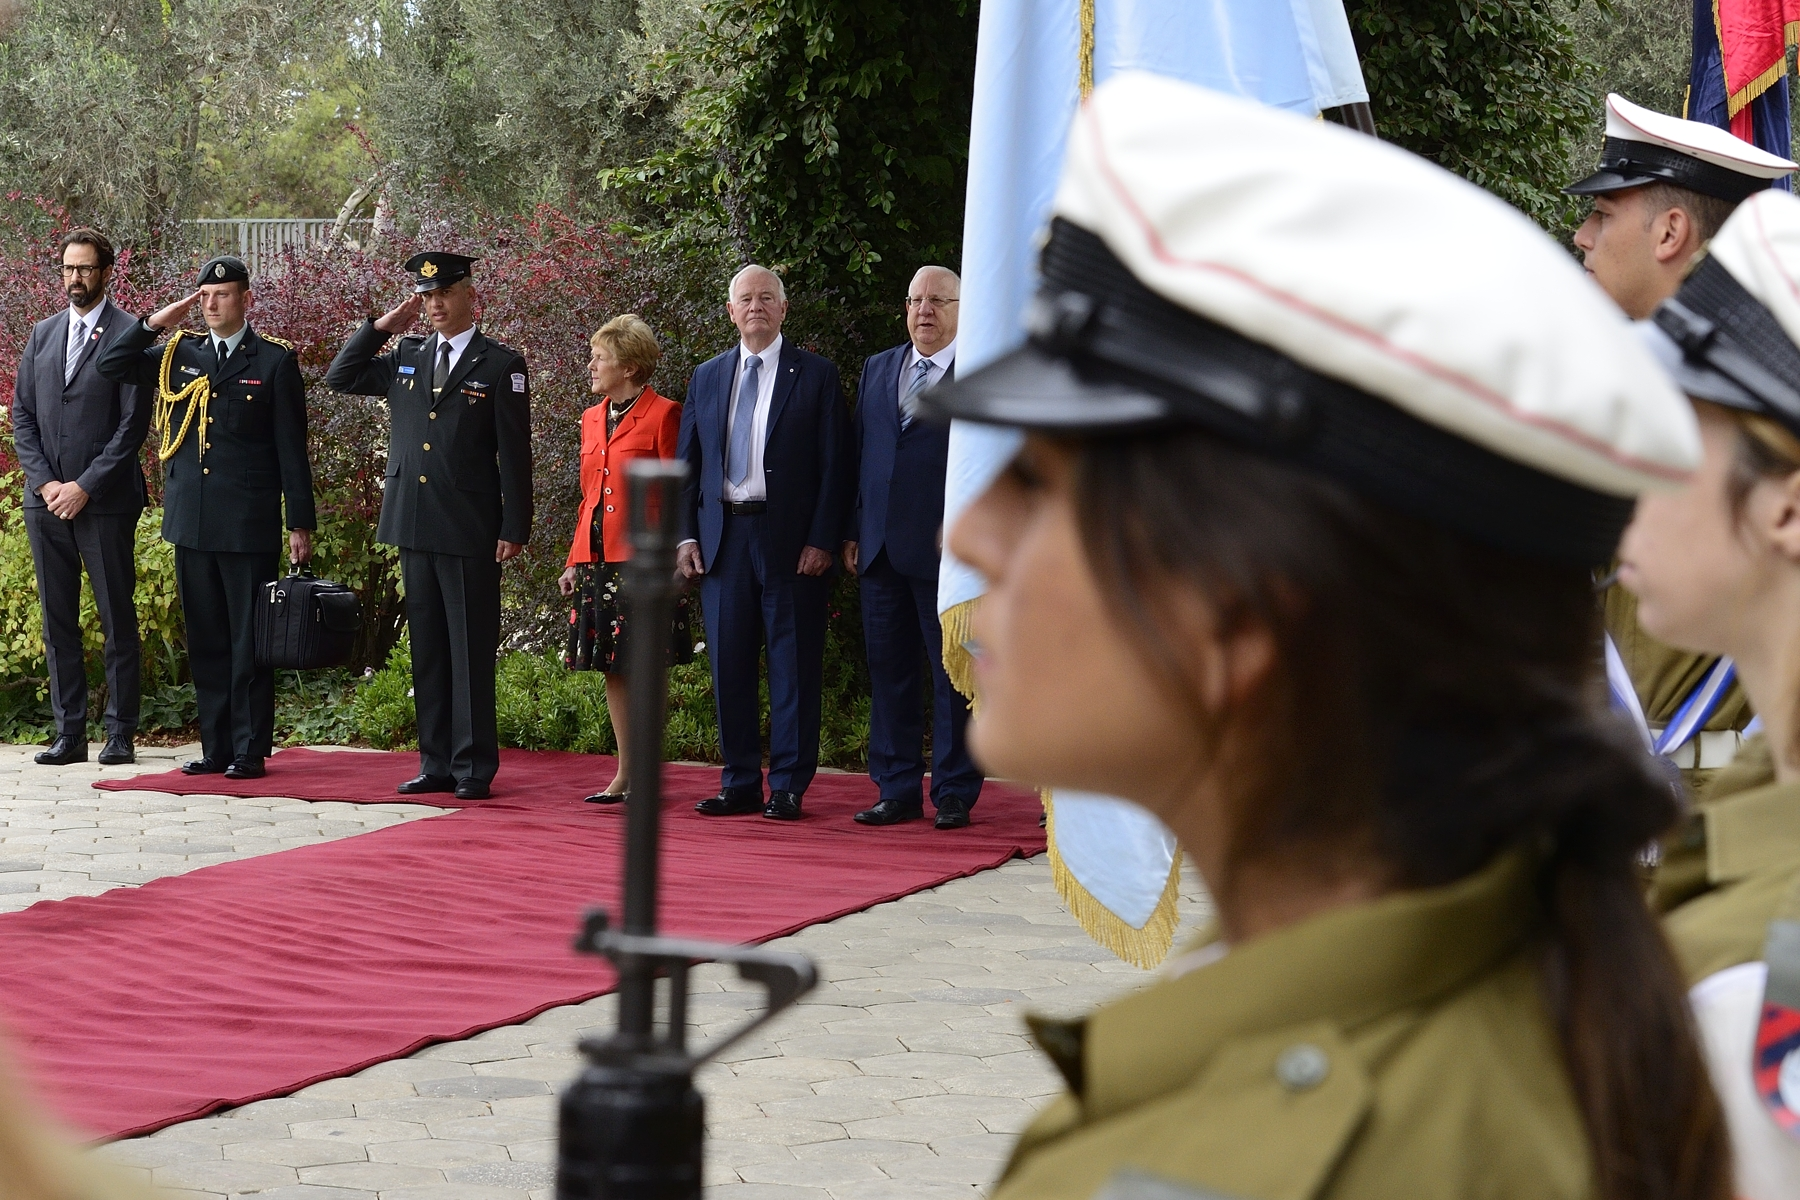 Their Excellencies were officially welcomed by His Excellency Reuven Rivlin, President of Israel, and by First Lady Nechama Rivlin, on November 2, 2016.